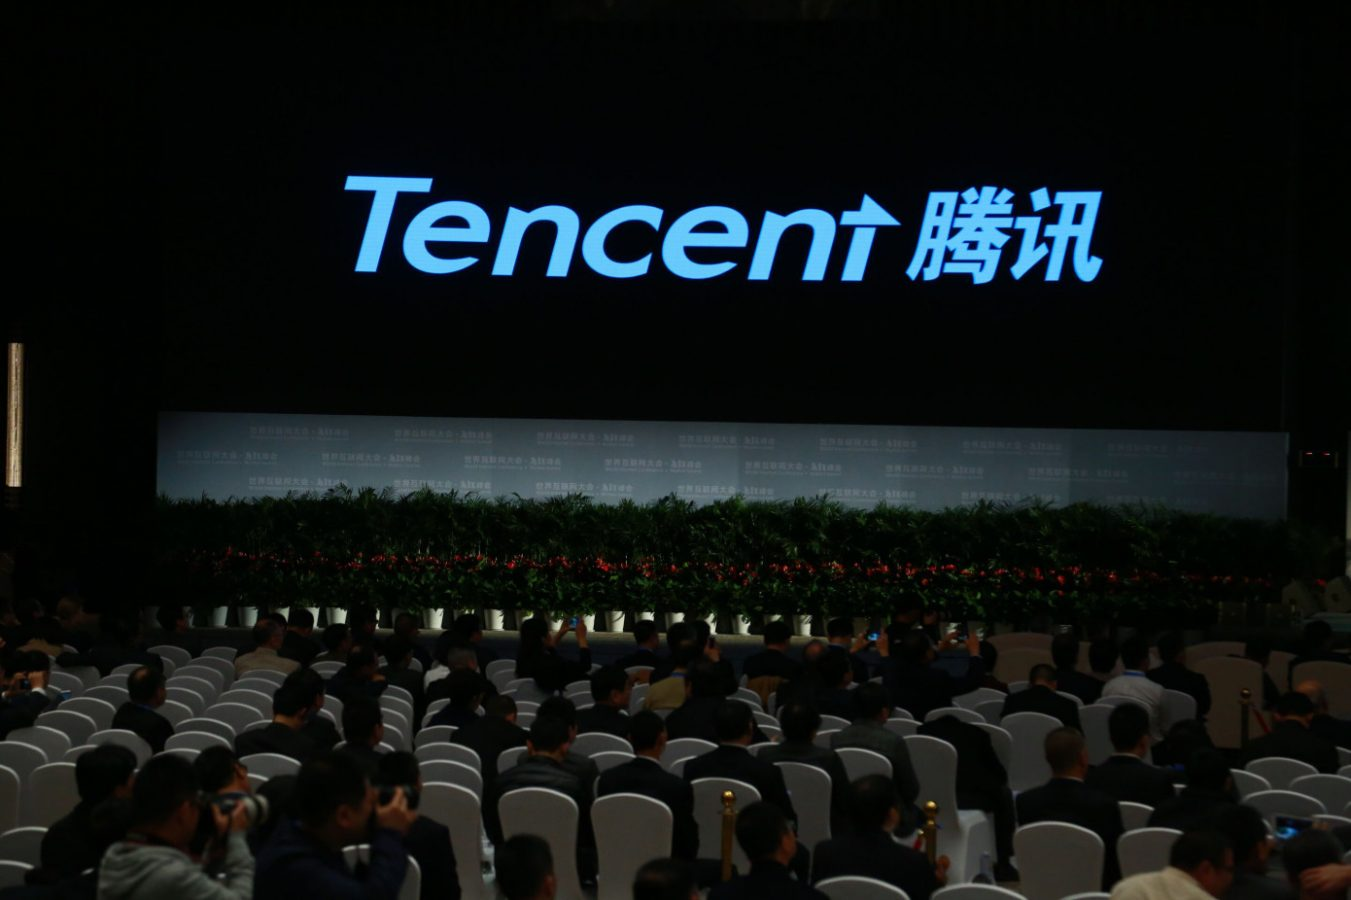 tencent and nokia partner up for 5g